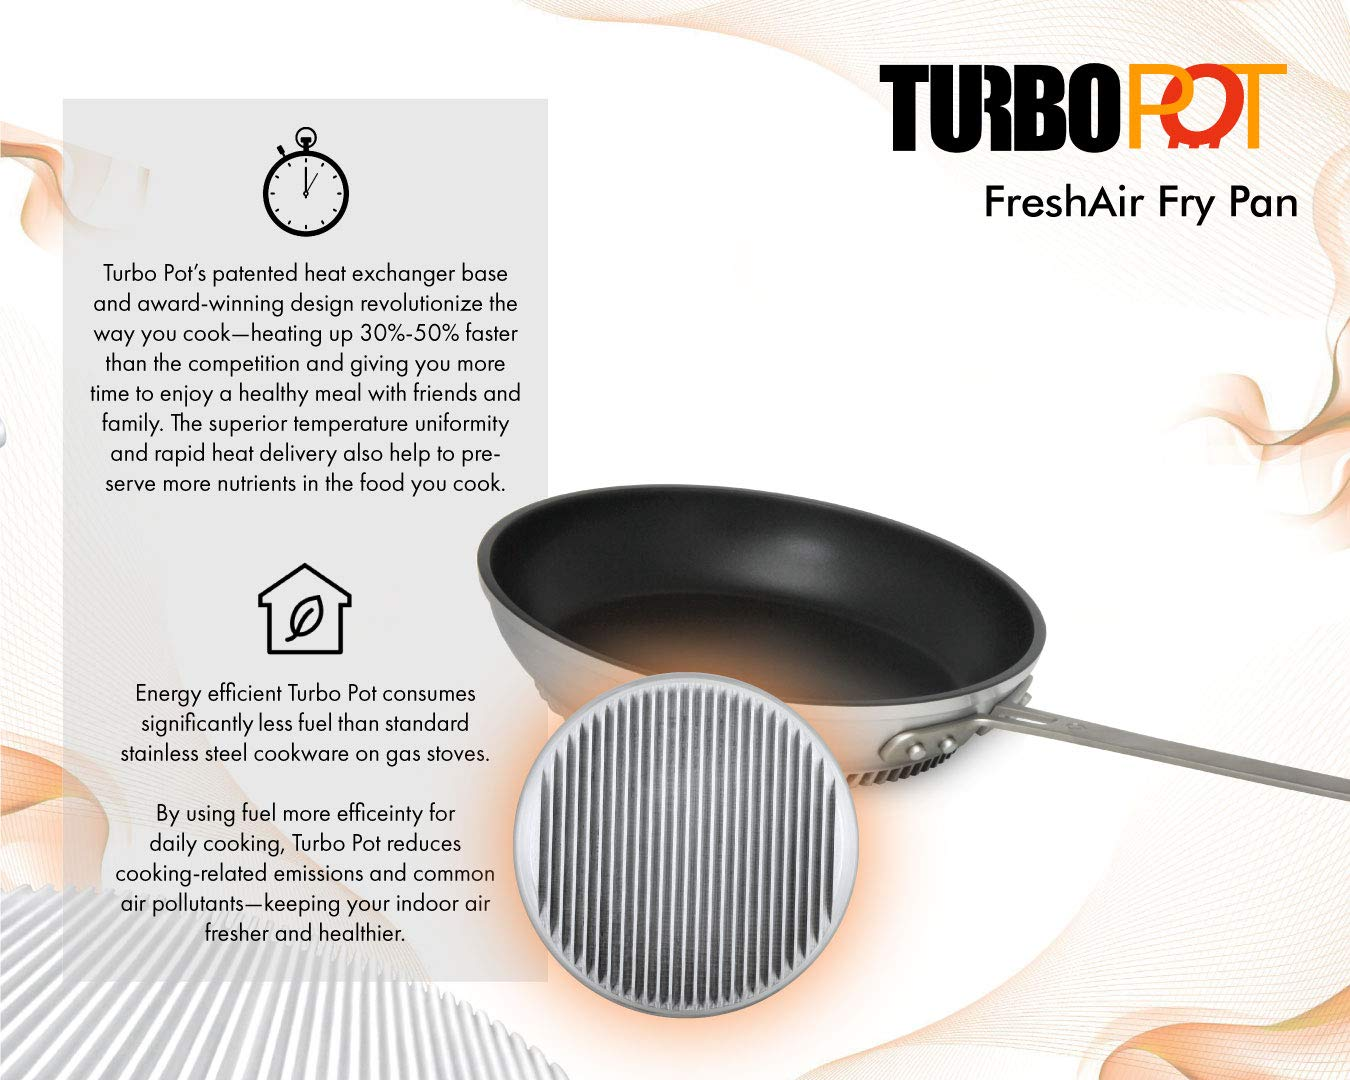 Amazon.com: FlamePro Professional 10-inch Aluminum Nonstick Fry Pan/Skillet by Turbo Pot, Energy-Efficient Cookware for Gas Stove, Commercial Grade: Kitchen ...